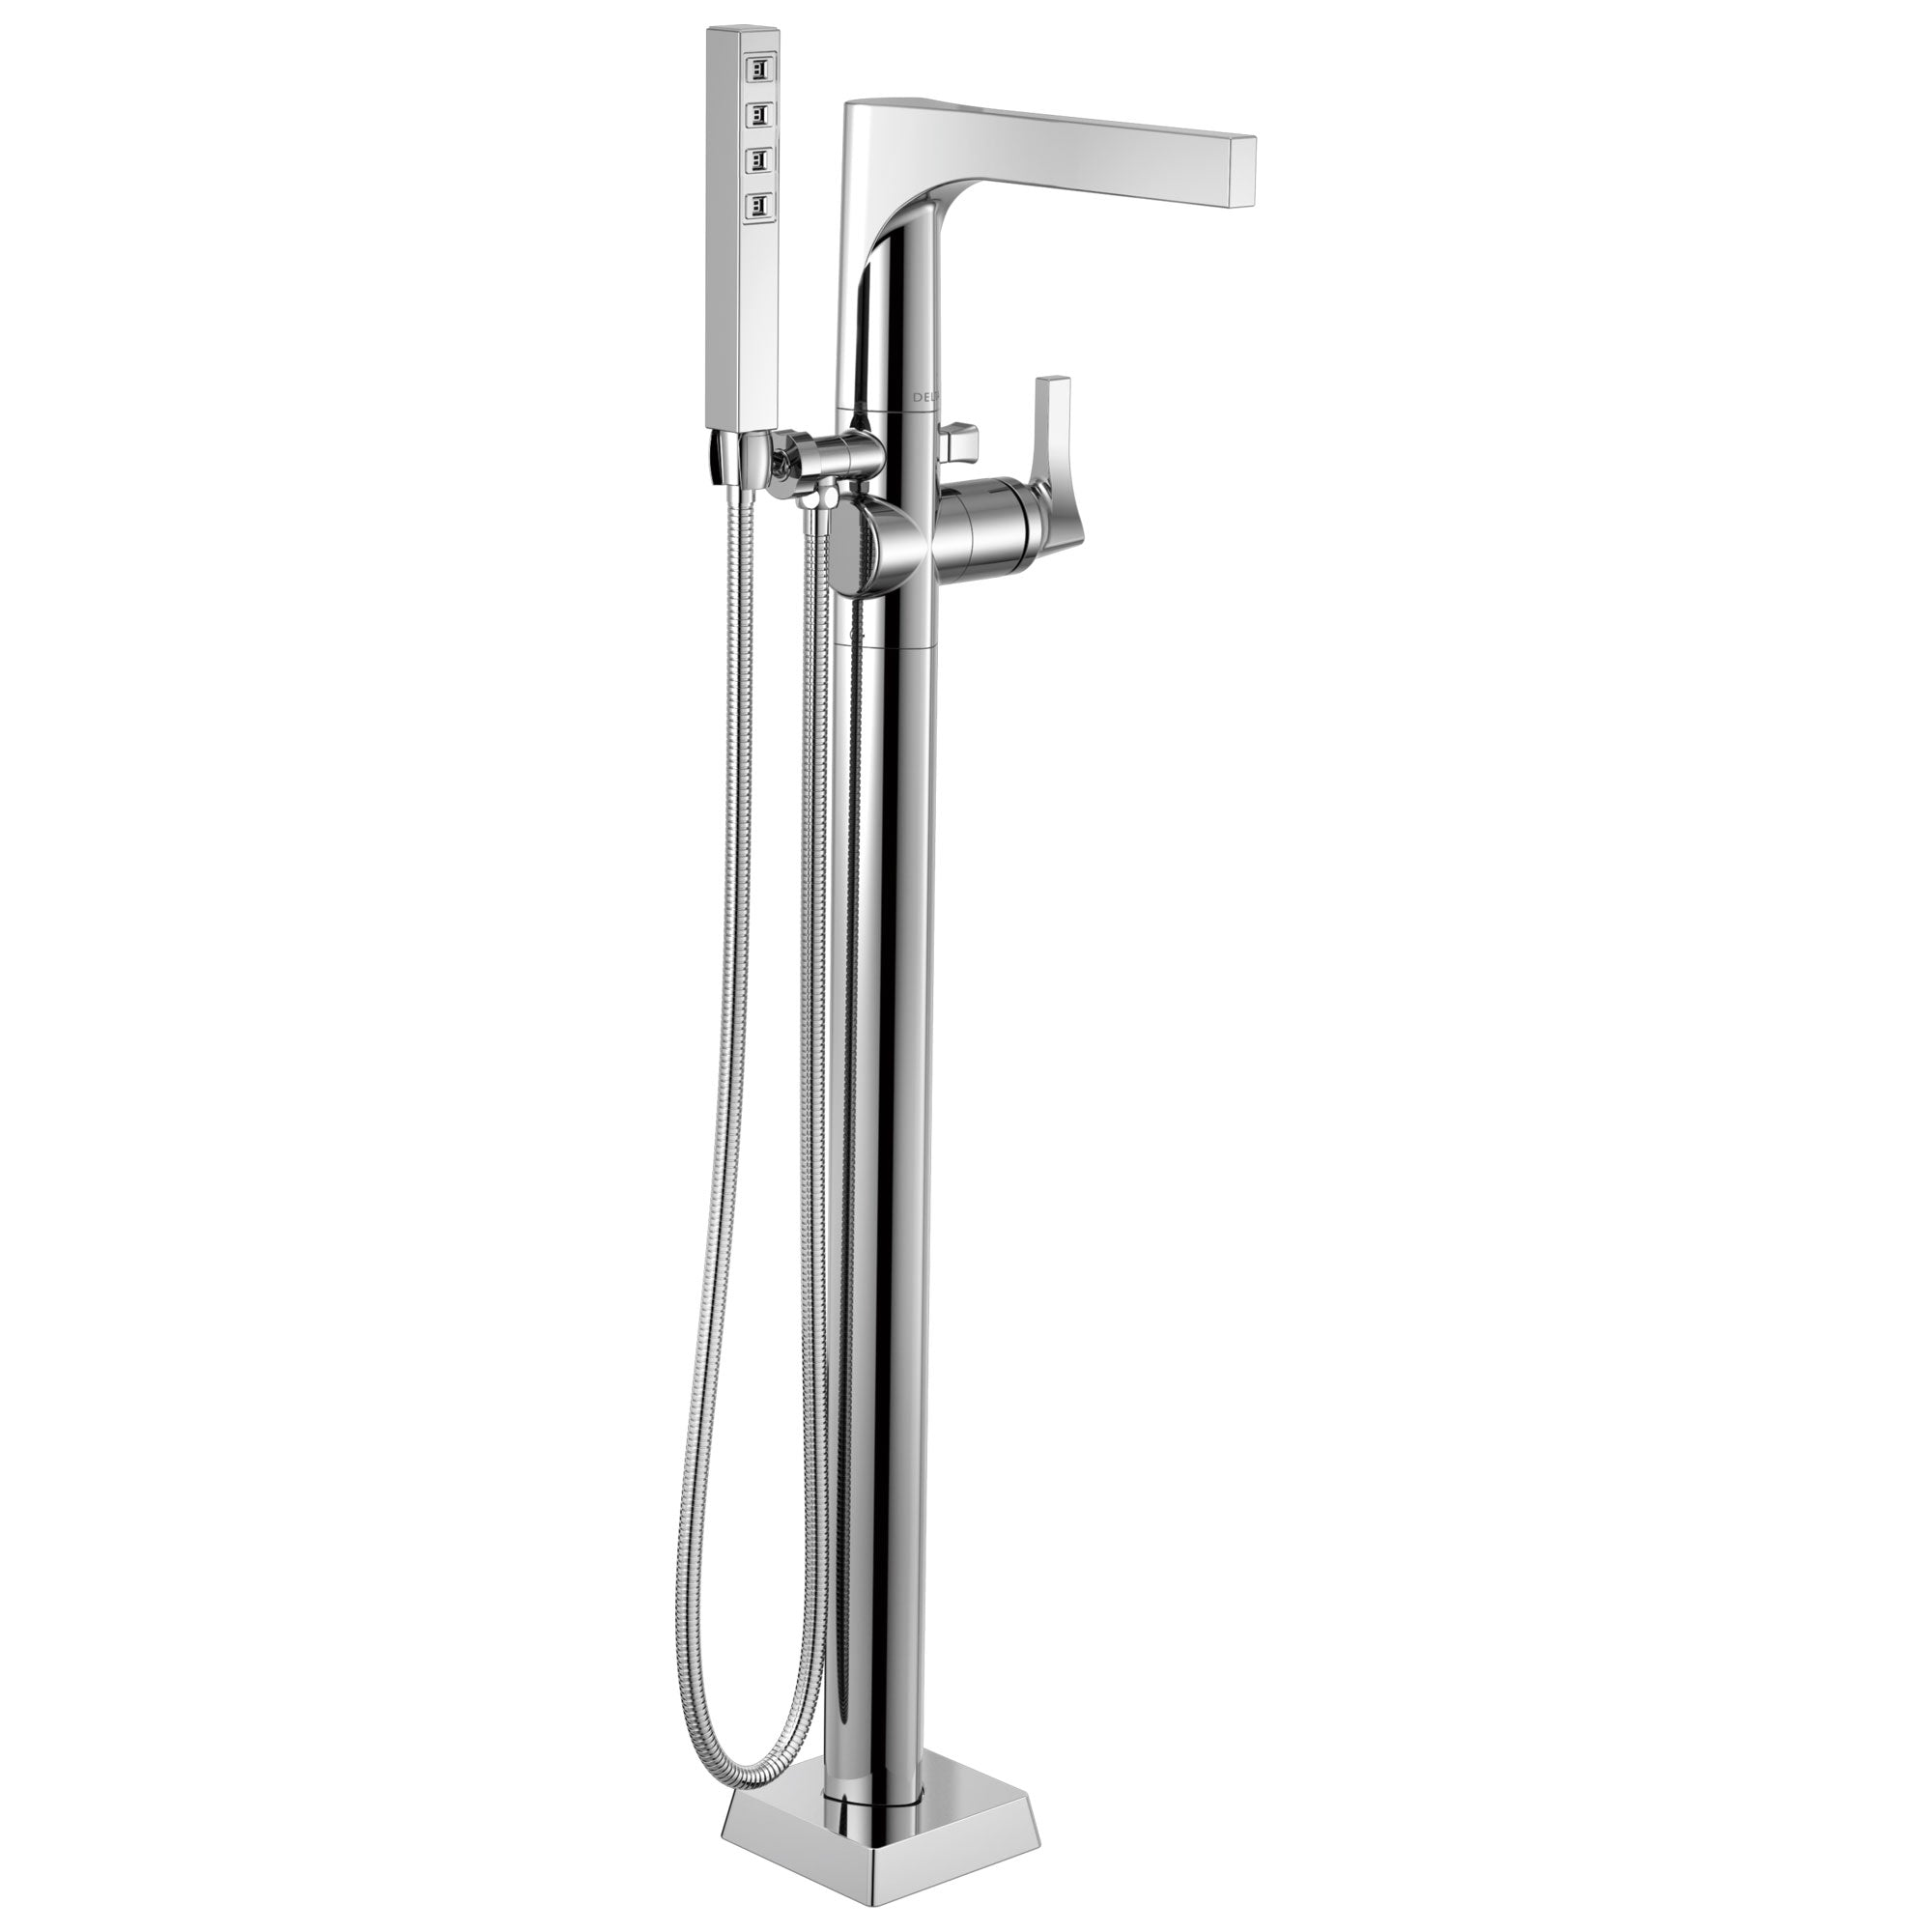 Delta Zura Collection Chrome Modern Floor Mount Freestanding Tub Filler Faucet with Hand Shower Includes Trim Kit and Rough-in Valve D2069V